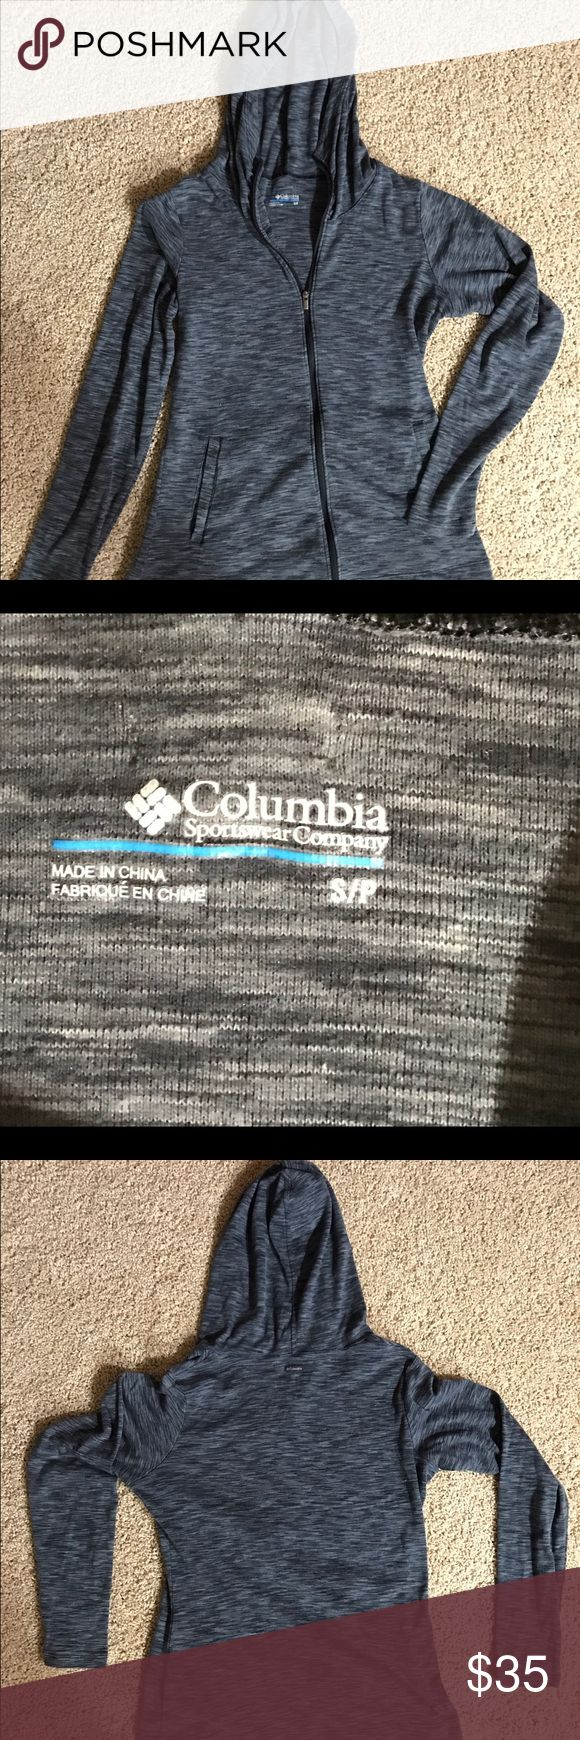 Columbia sportswear women's zip up, size small Columbia sportswear women's zip up workout Jacket, or just to wear! In great condition worn twice. Columbia Tops Sweatshirts & Hoodies